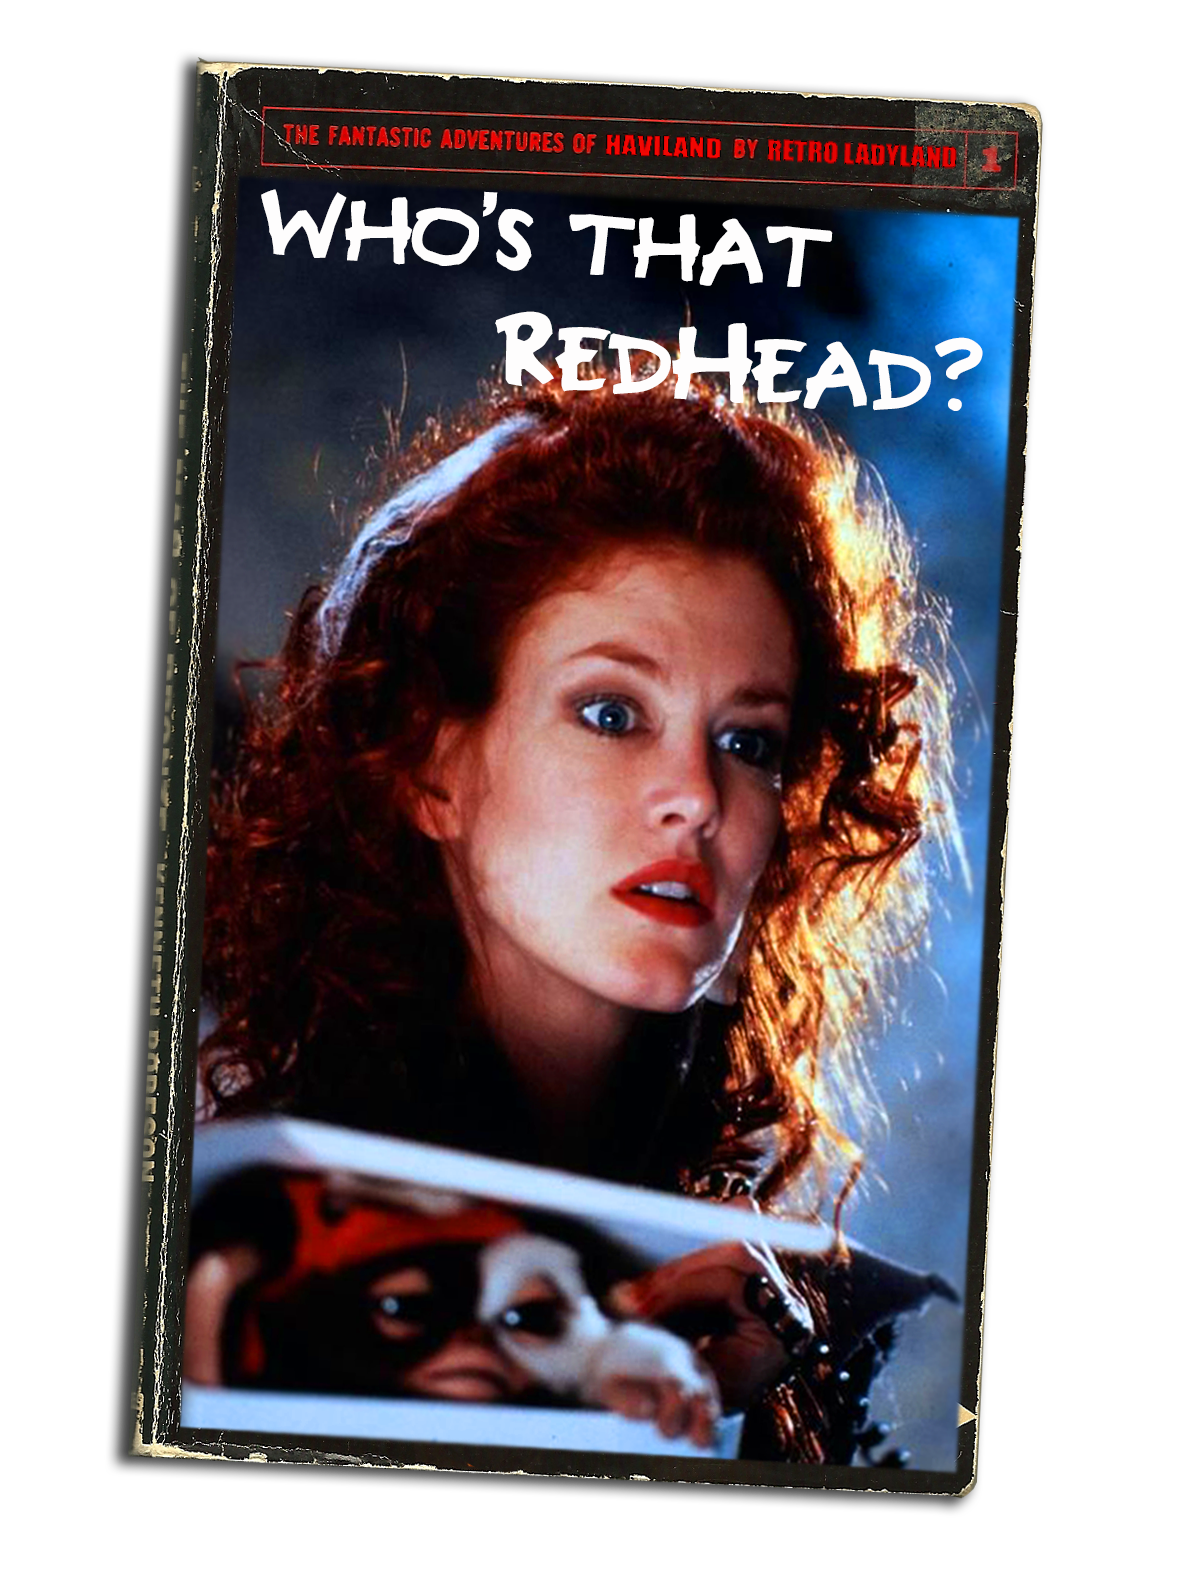 Haviland Morris retro ladyland: who's that redhead? an interview with